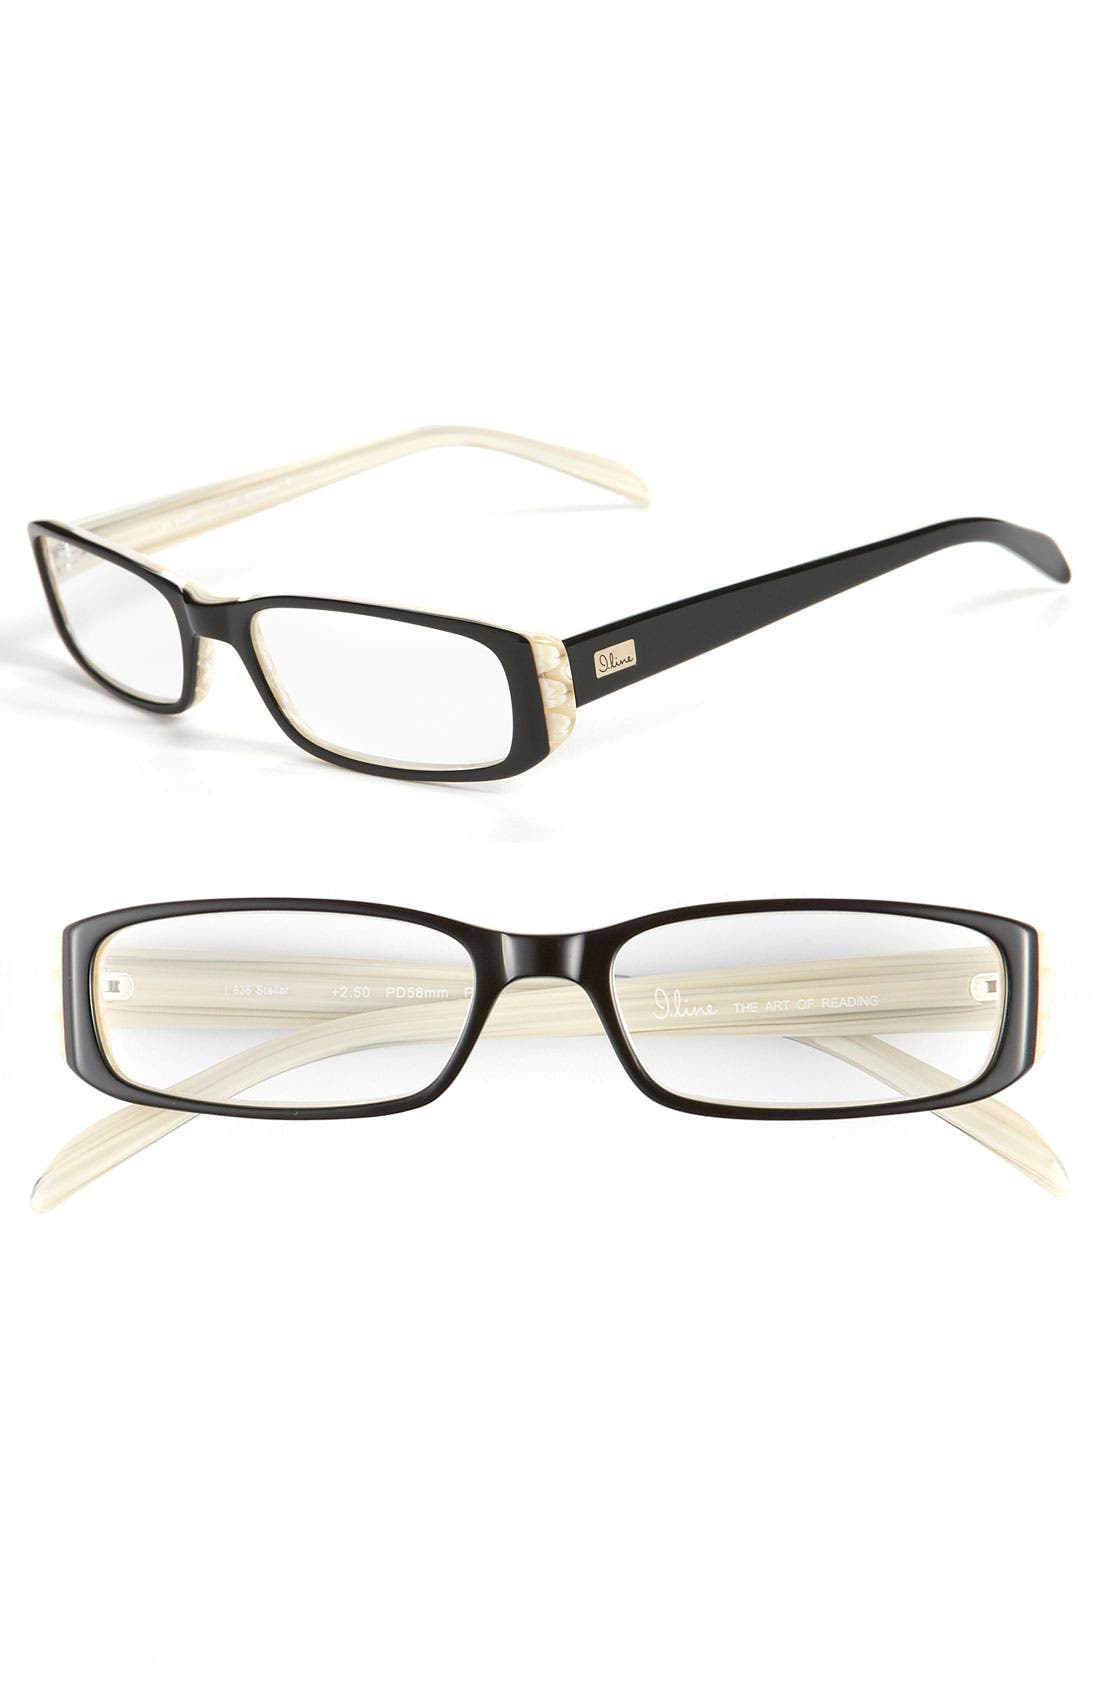 Main Image - I Line Eyewear 58mm Reading Glasses